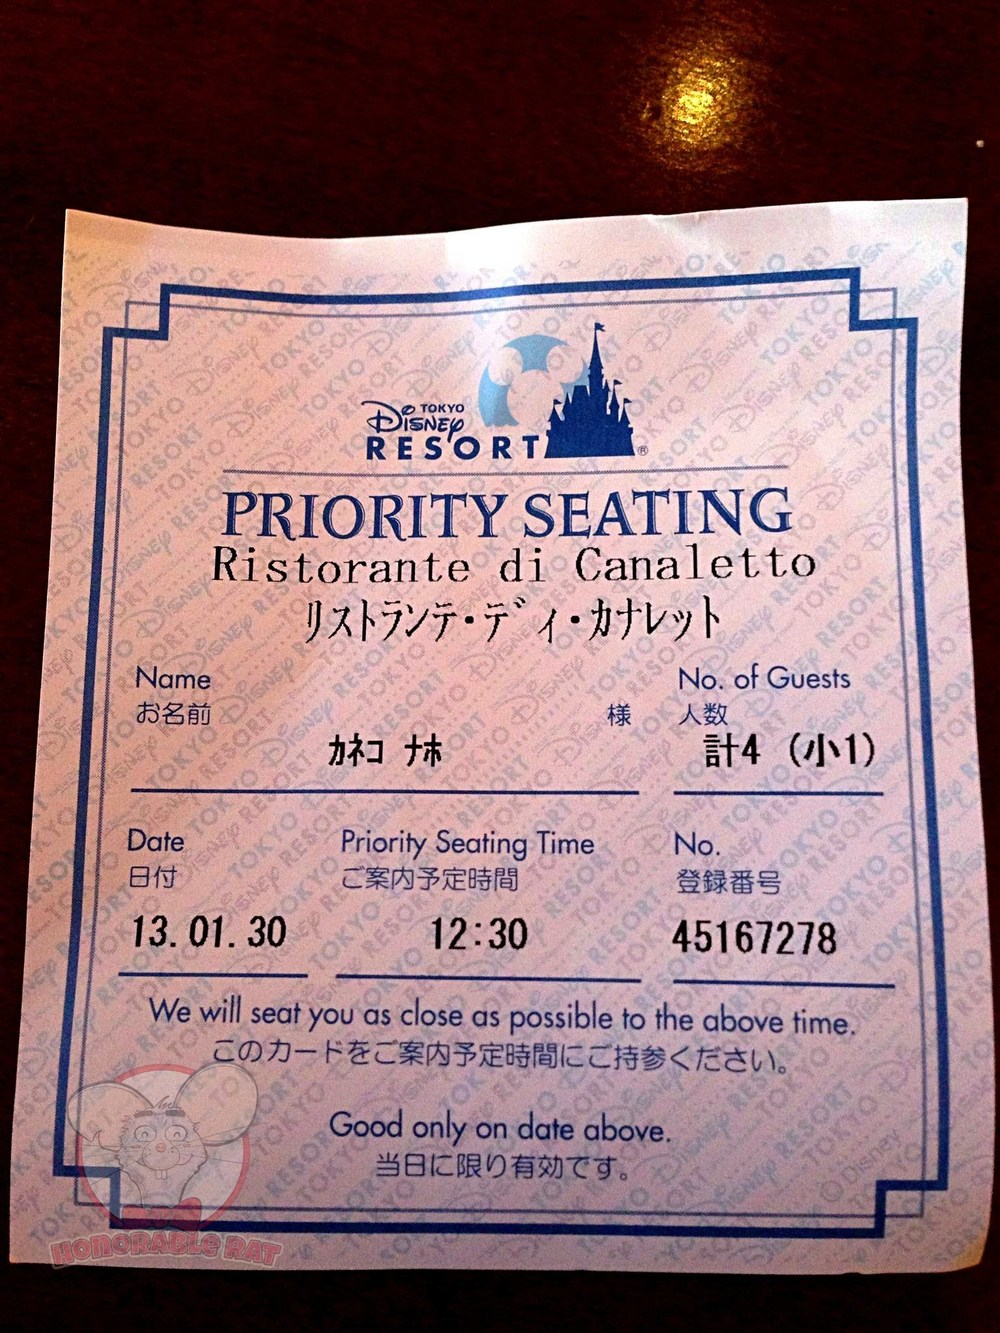 Priority Seating ticket